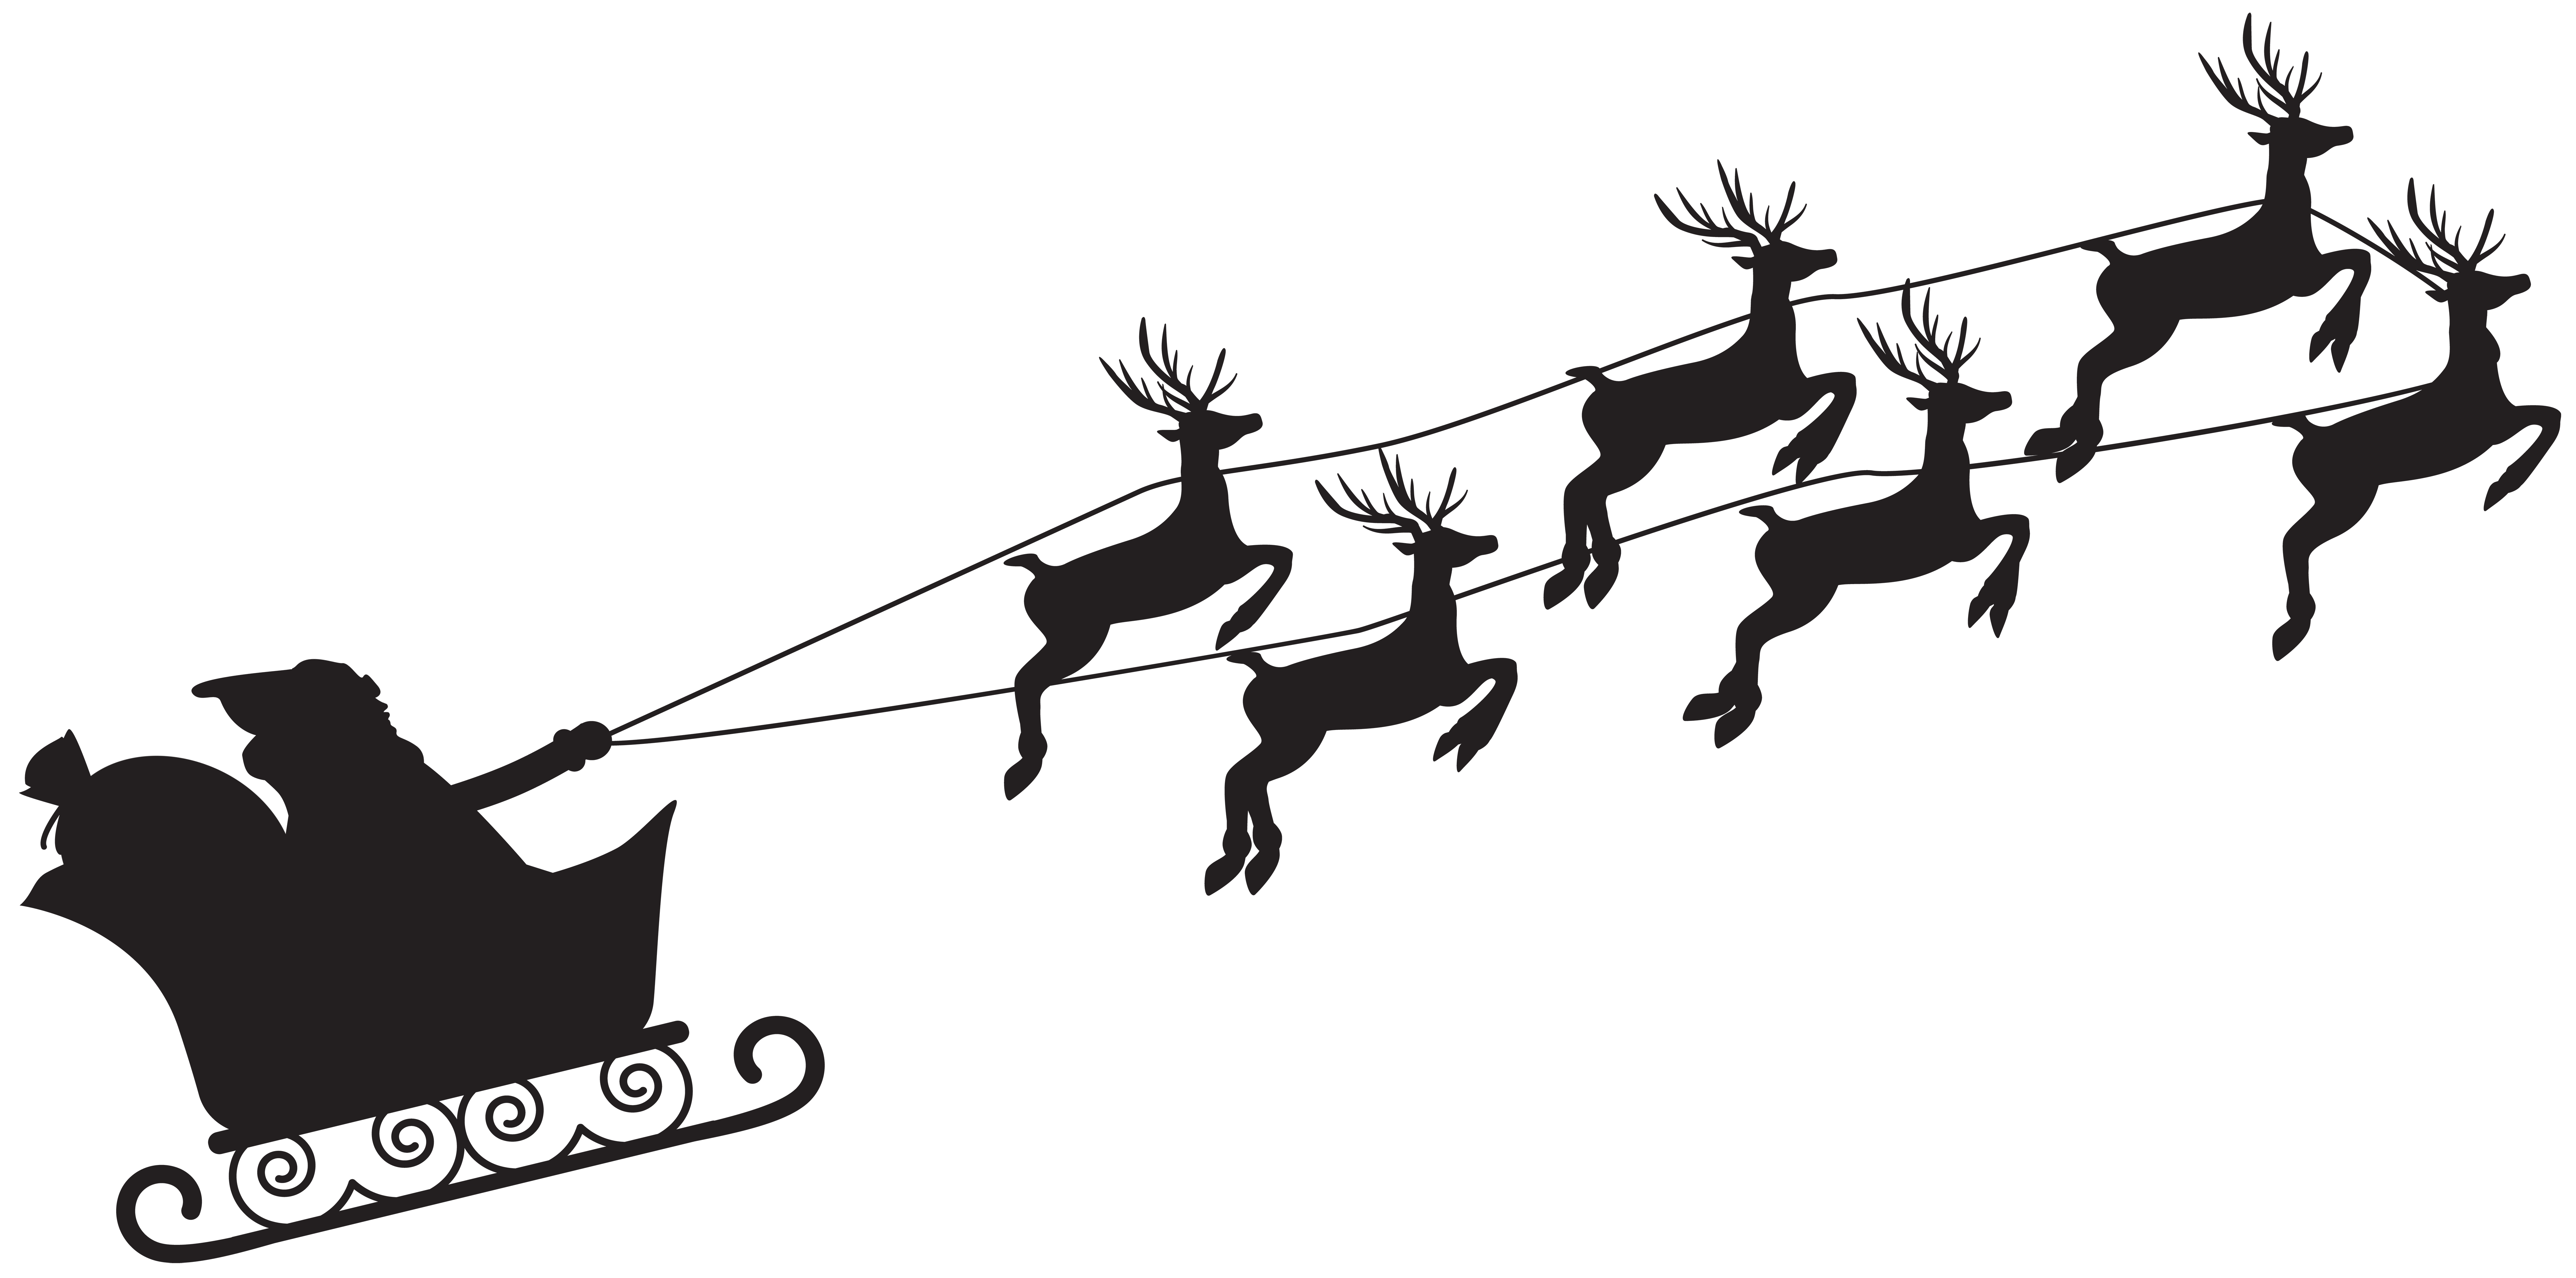 8000x3969 Santa Claus Silhouette Png Clip Artu200b Gallery Yopriceville